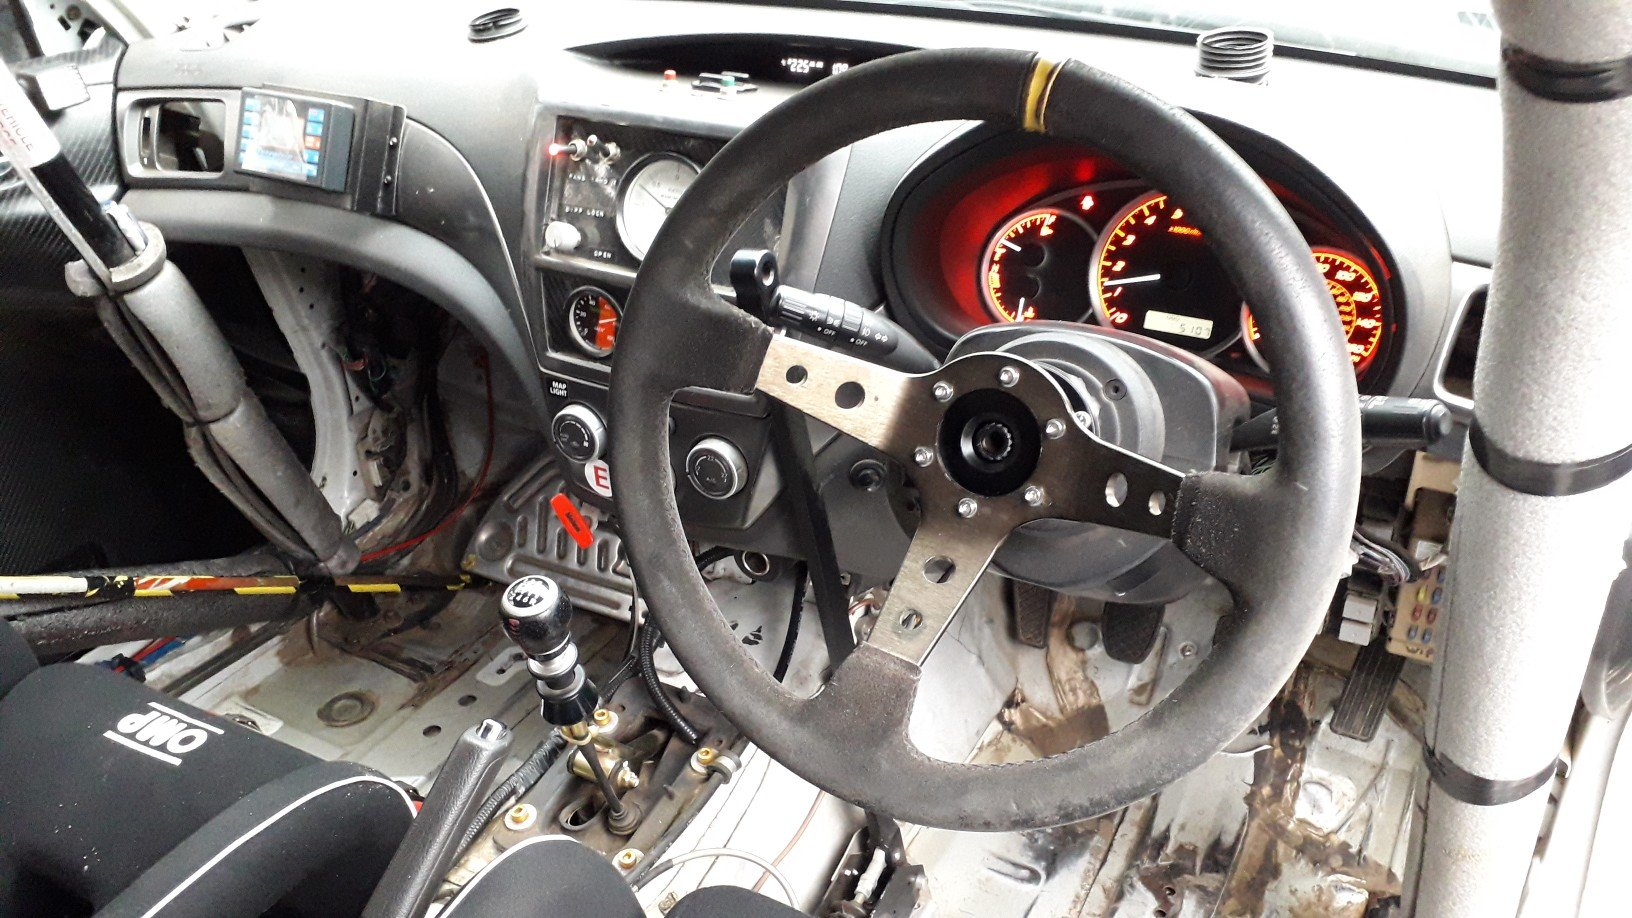 2009 subaru impreza n14 rally car full msa legal ready to rally  For Sale (picture 5 of 6)